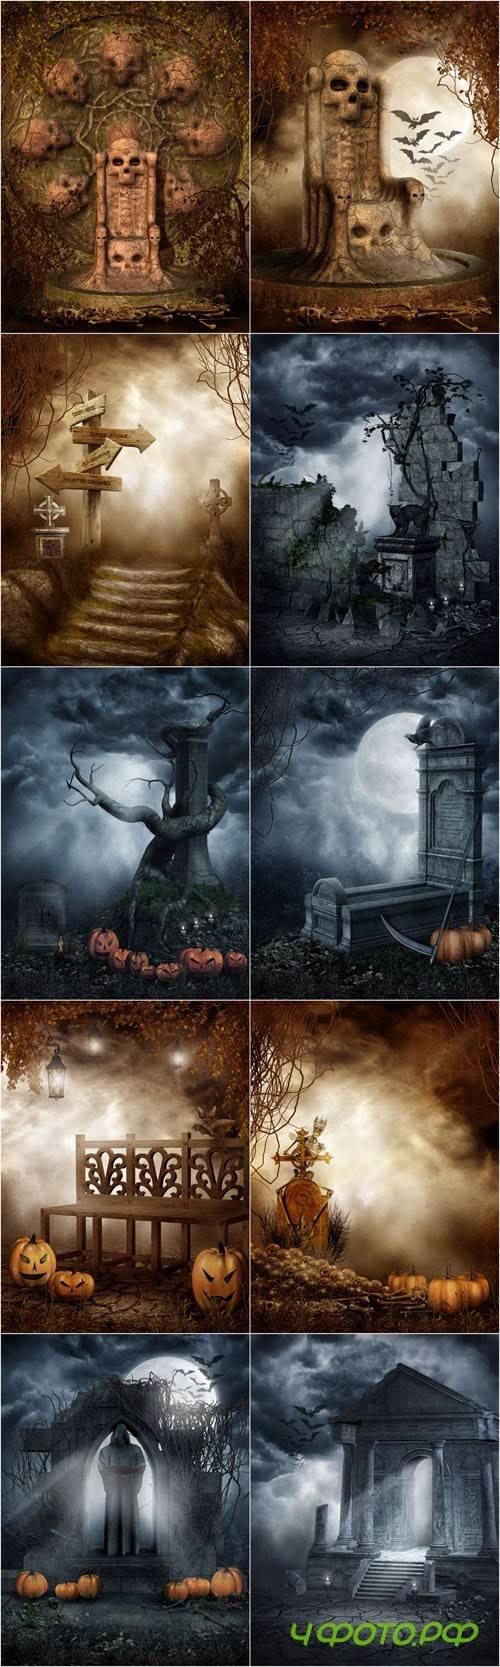 Wicked Halloween Backgrounds - The correct reference